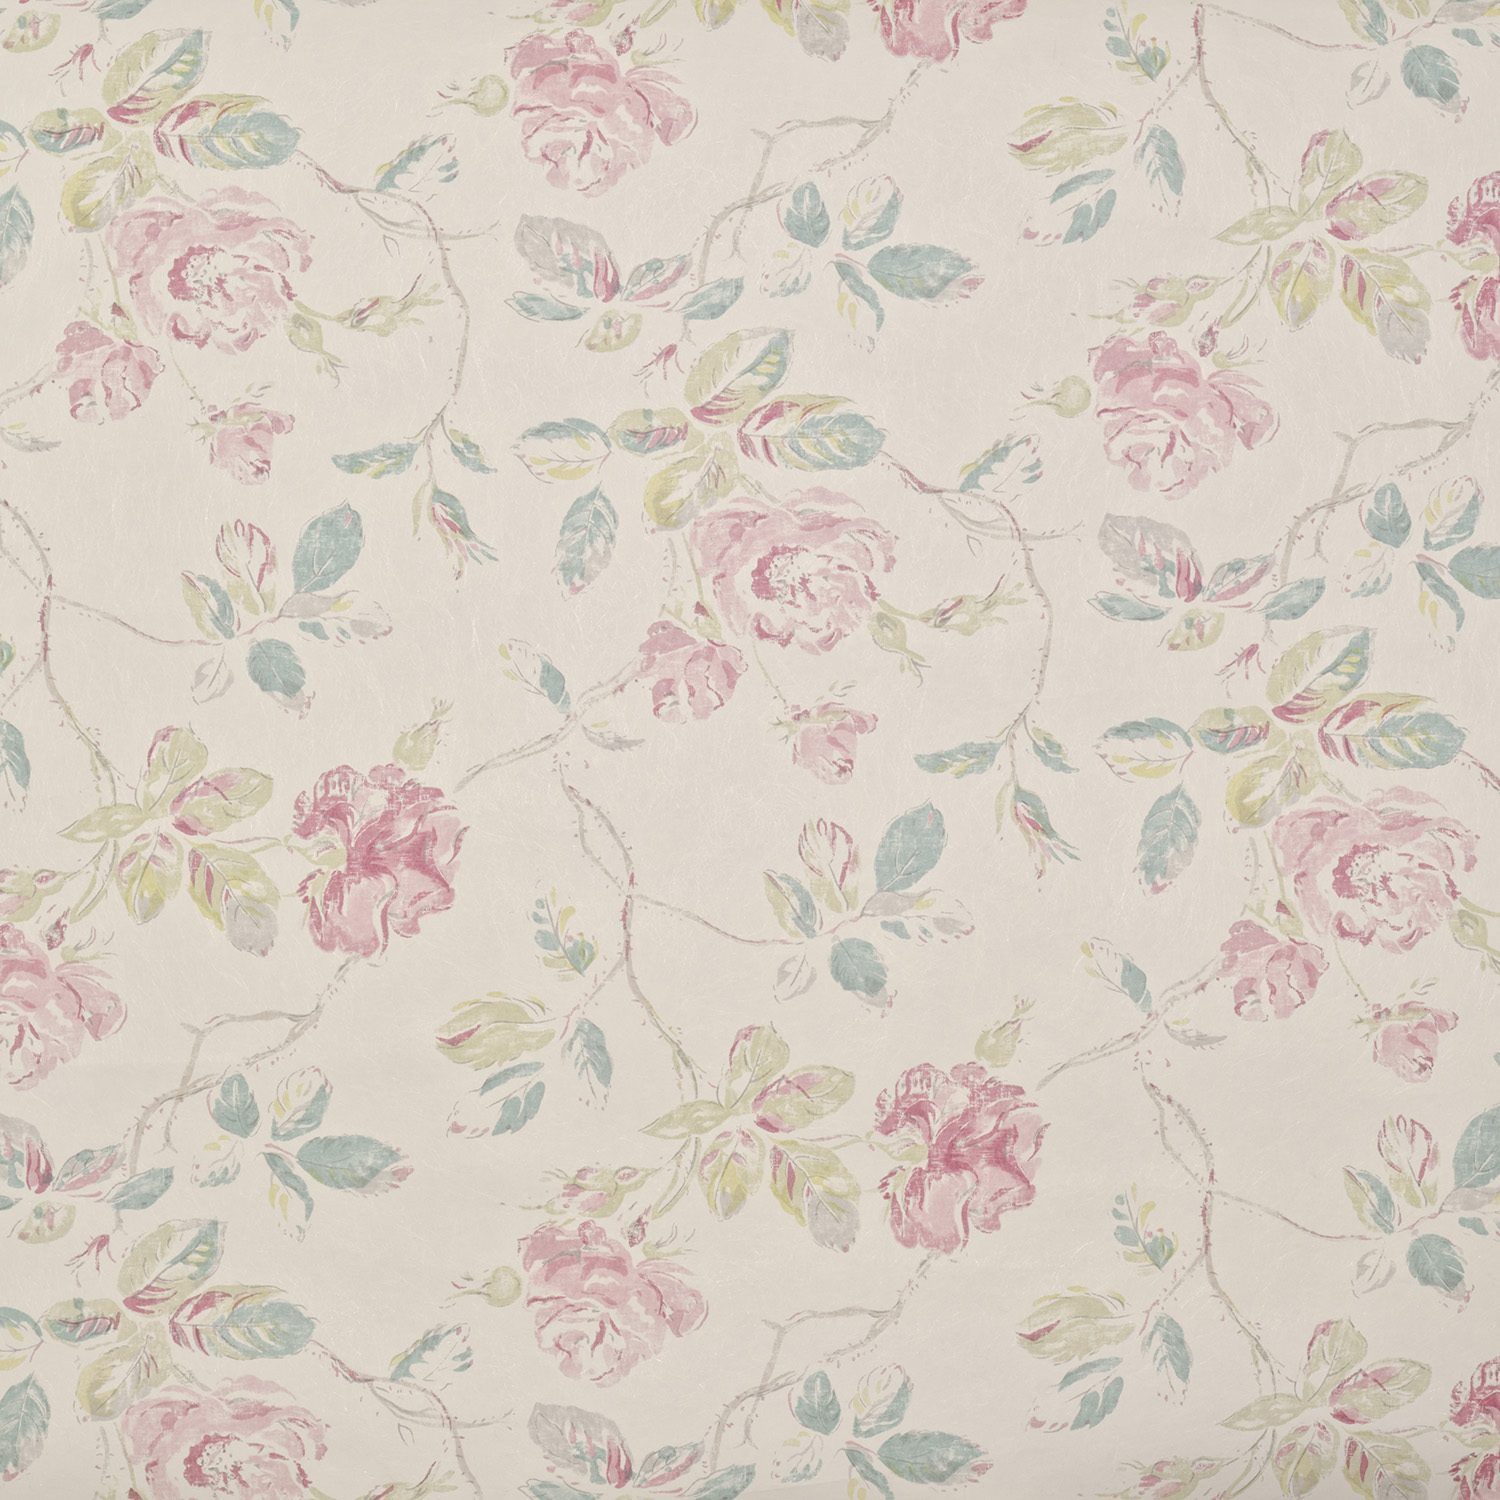 <p><strong>MARLOW</strong>turquoise/pink/white 980-01<a href=/collection-3/marlow-turquoise-pink-white-980-01>More →</a></p>